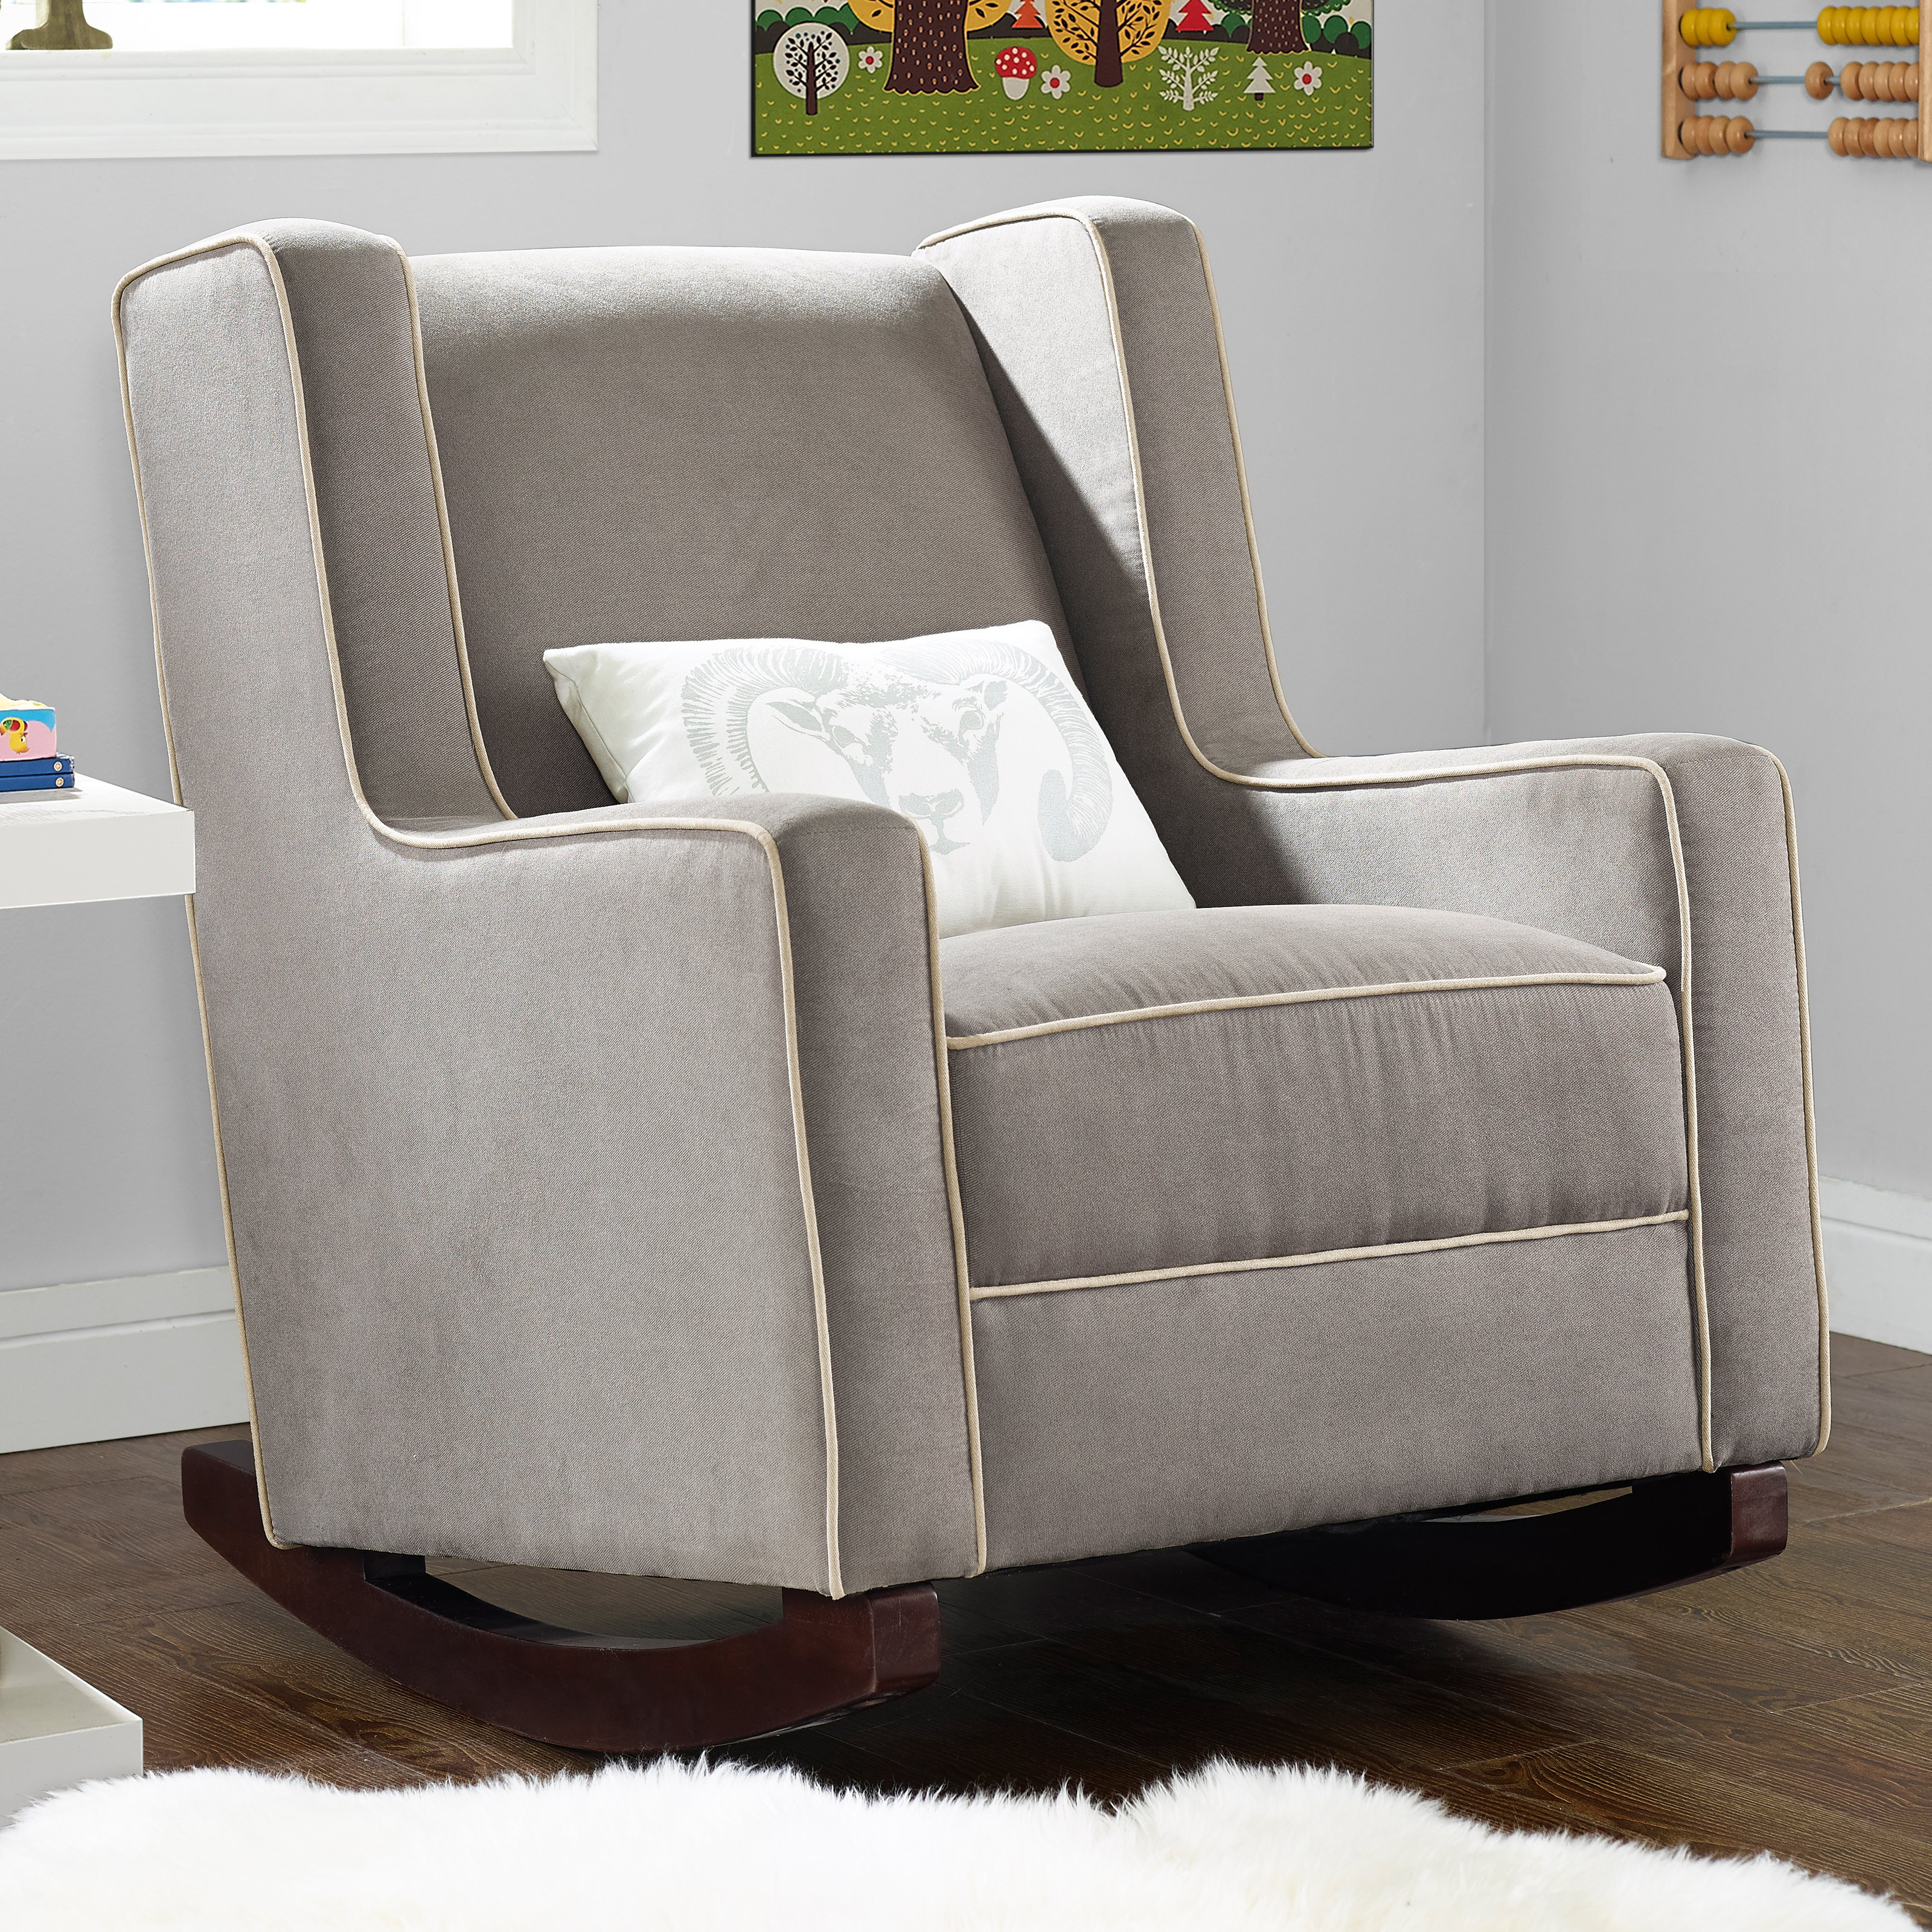 Recliner : Baby Relax Abby Rocker Luxury Glider And Recliner For Within Recent Abbey Swivel Glider Recliners (View 19 of 20)